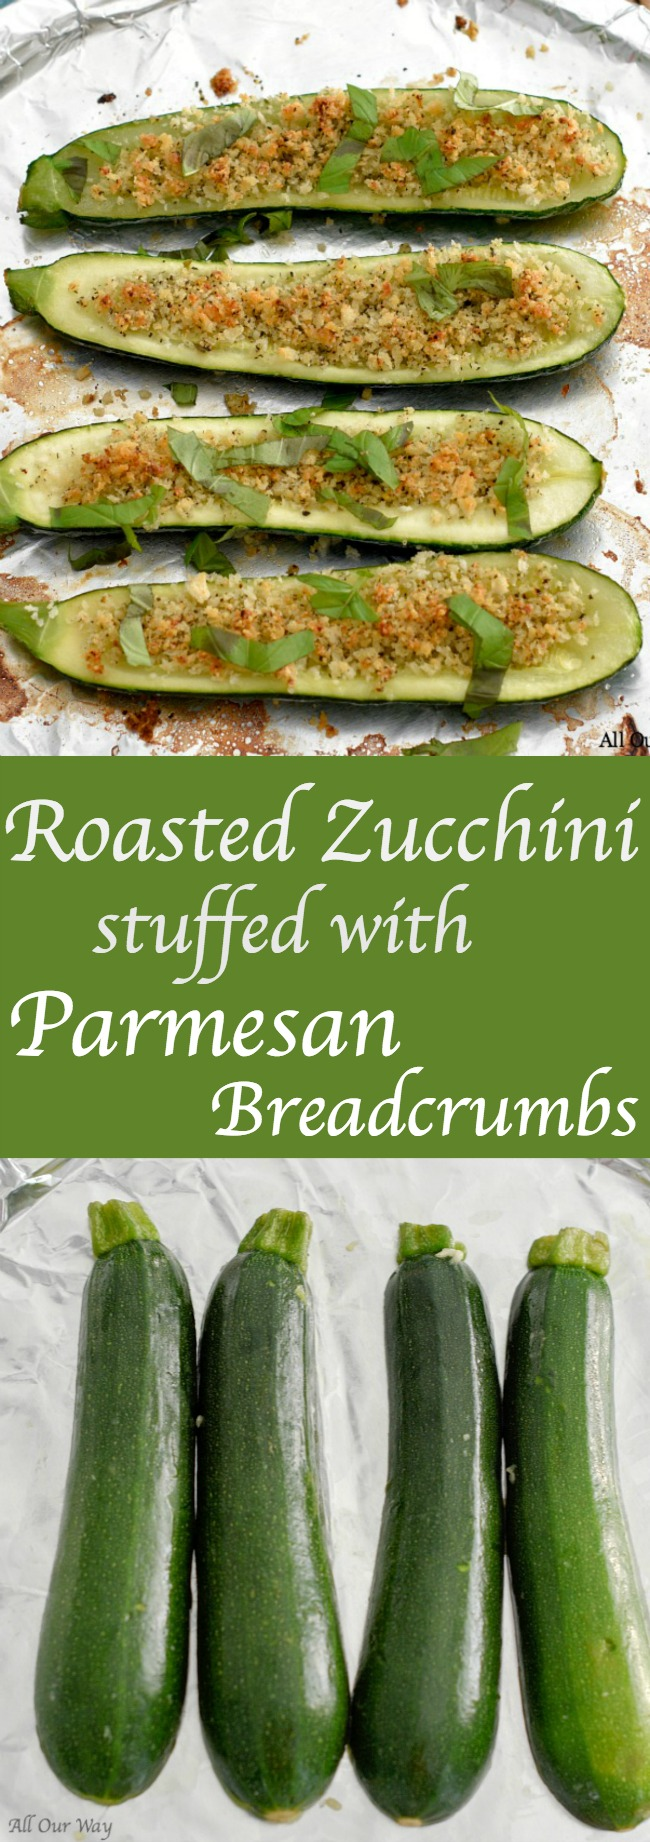 Roasted Zucchini Stuffed with Parmesan Breadcrumbs is an easy vegetable side that is loaded with flavor and texture. Can be prepared ahead then roasted before serving.